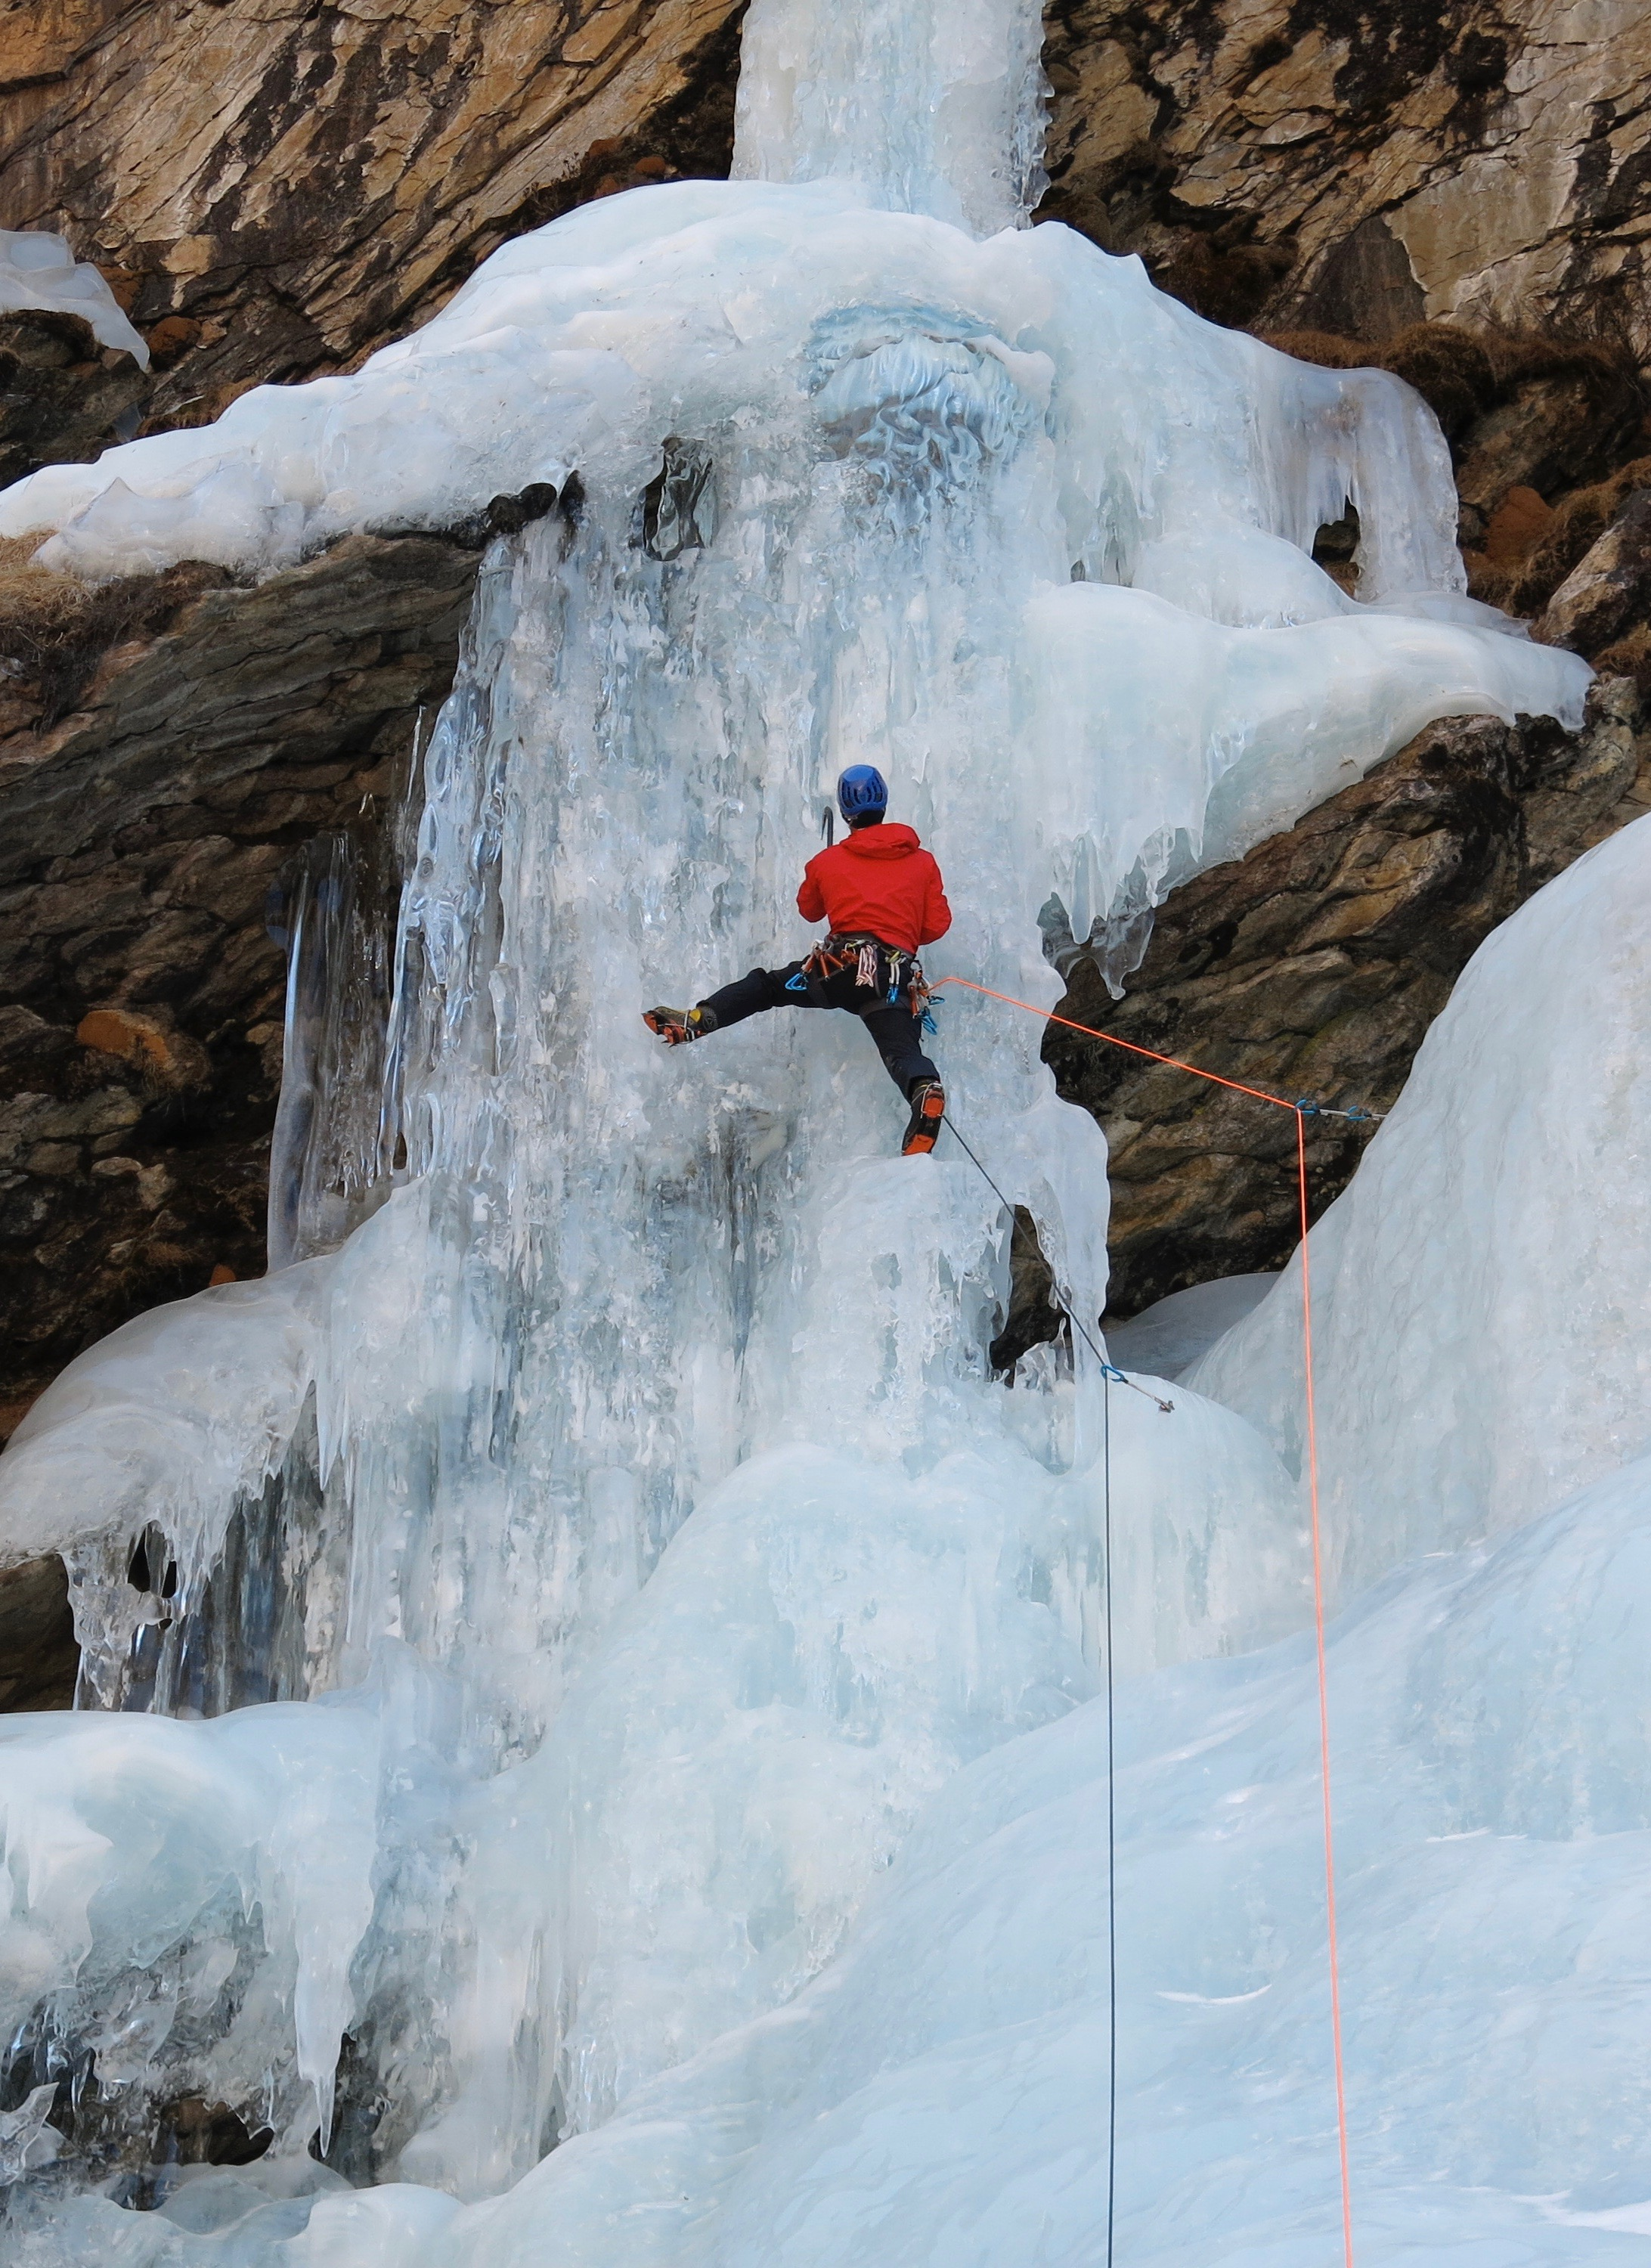 Splashdown WI 6, Rowaling. Pitch 1. First ascent in 2013  Photo: Gresham collection